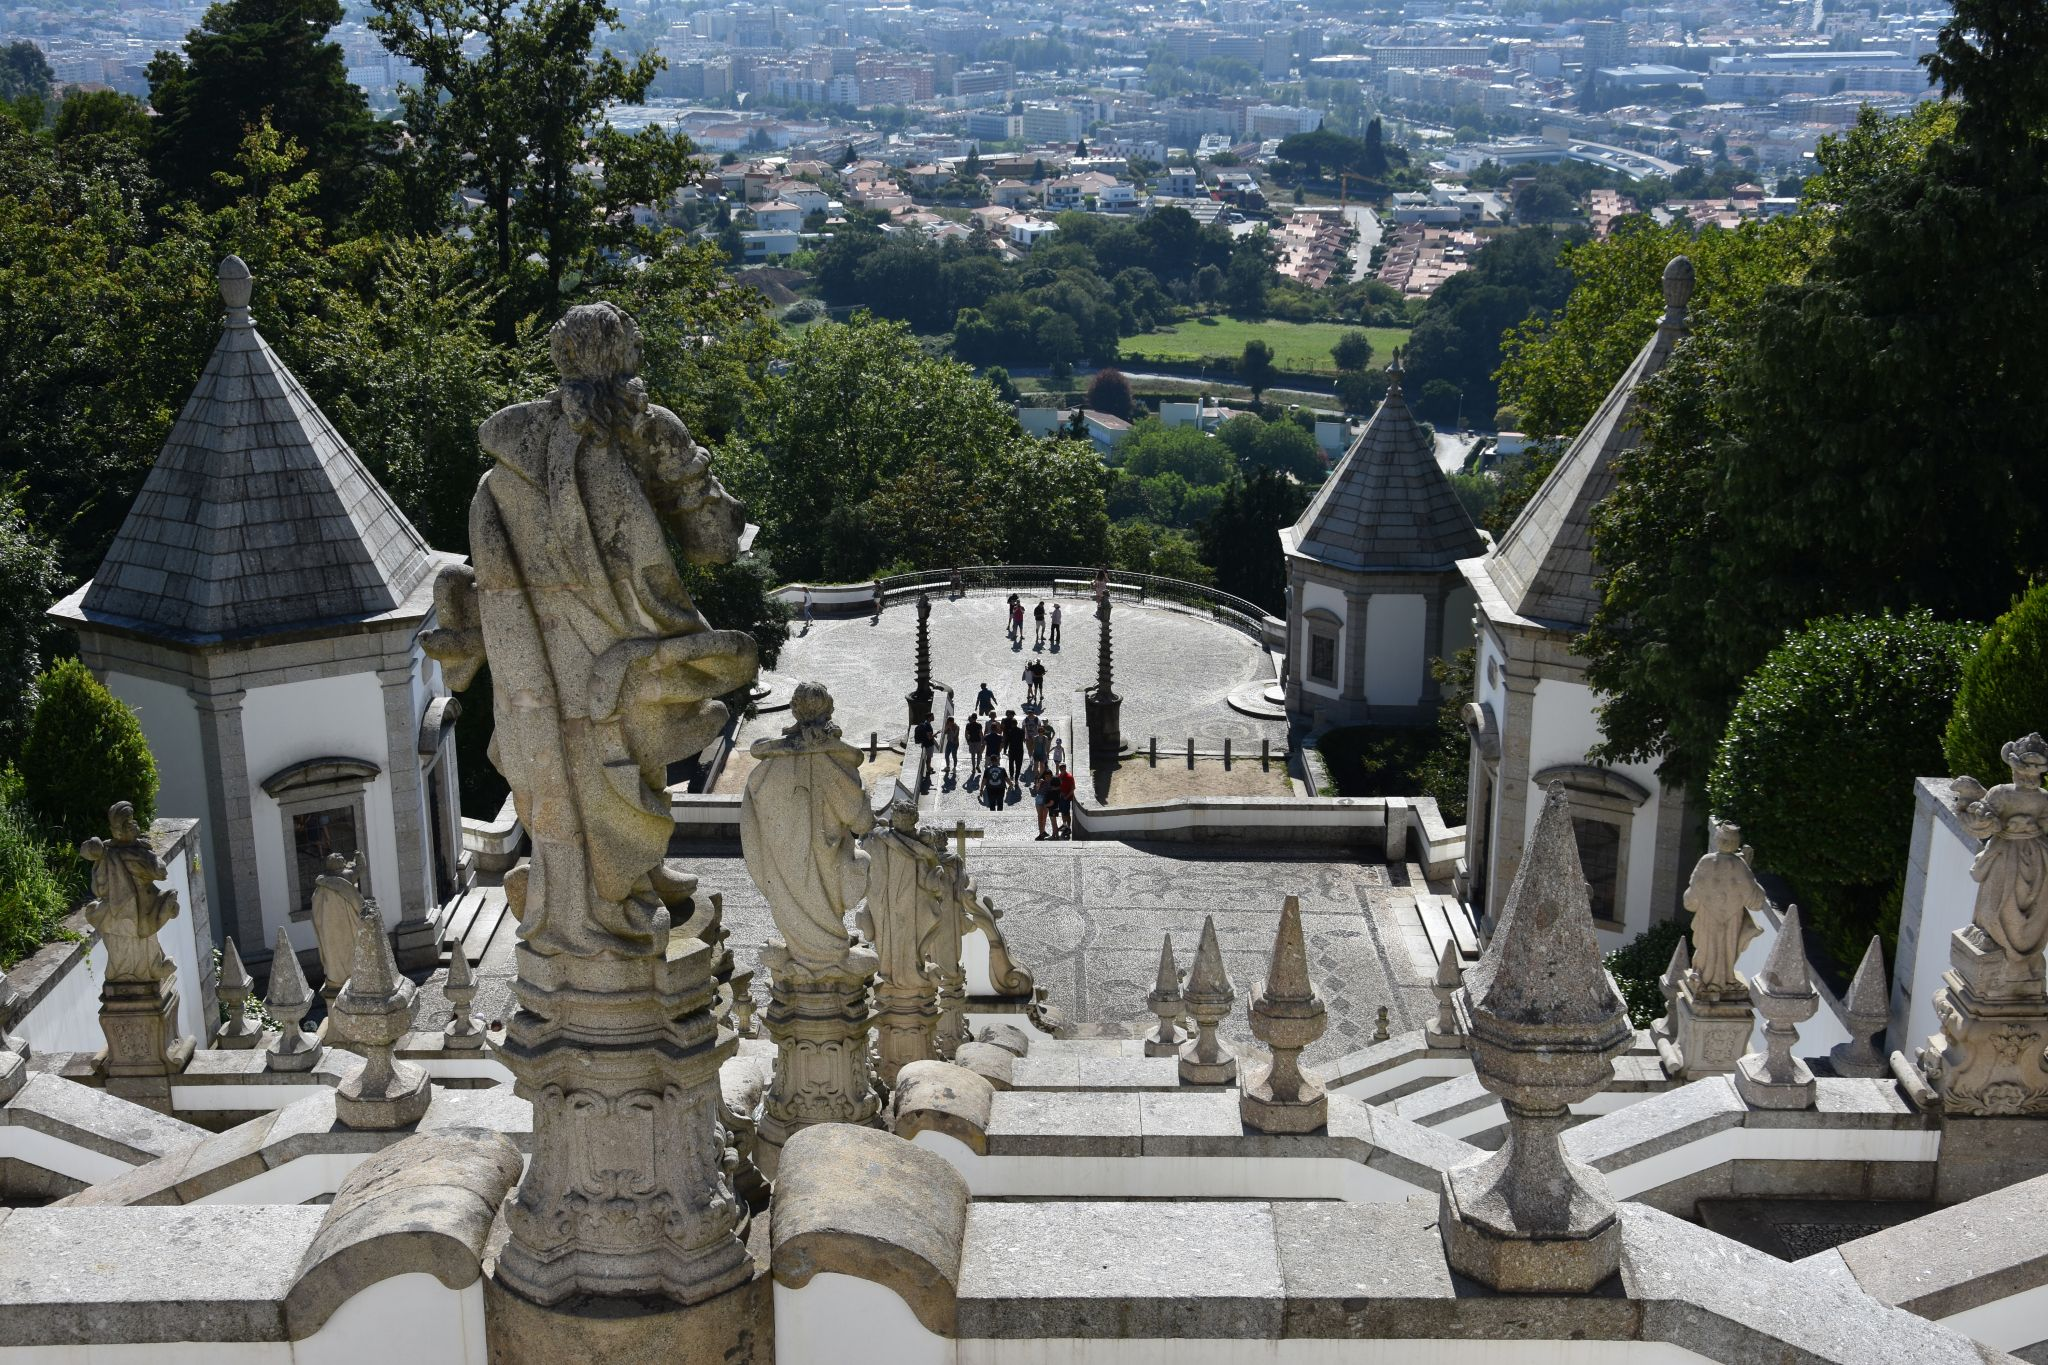 Stairway of Bom Jesus from above, Portugal